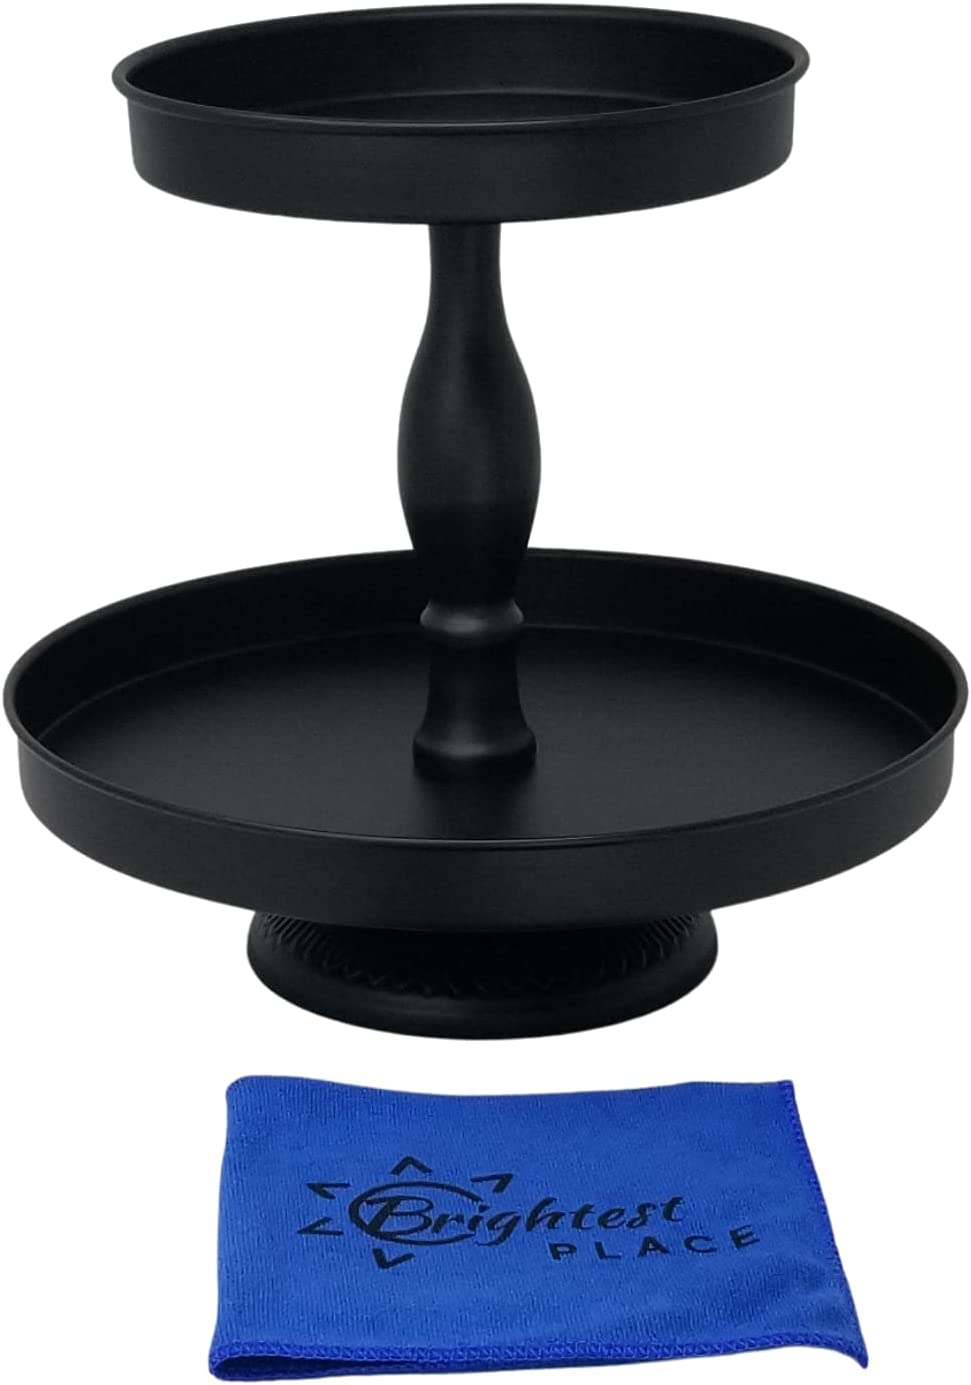 Max 45% OFF Now on sale Brightest Place Black Tiered Metal Tray Decor Farmhouse Stand